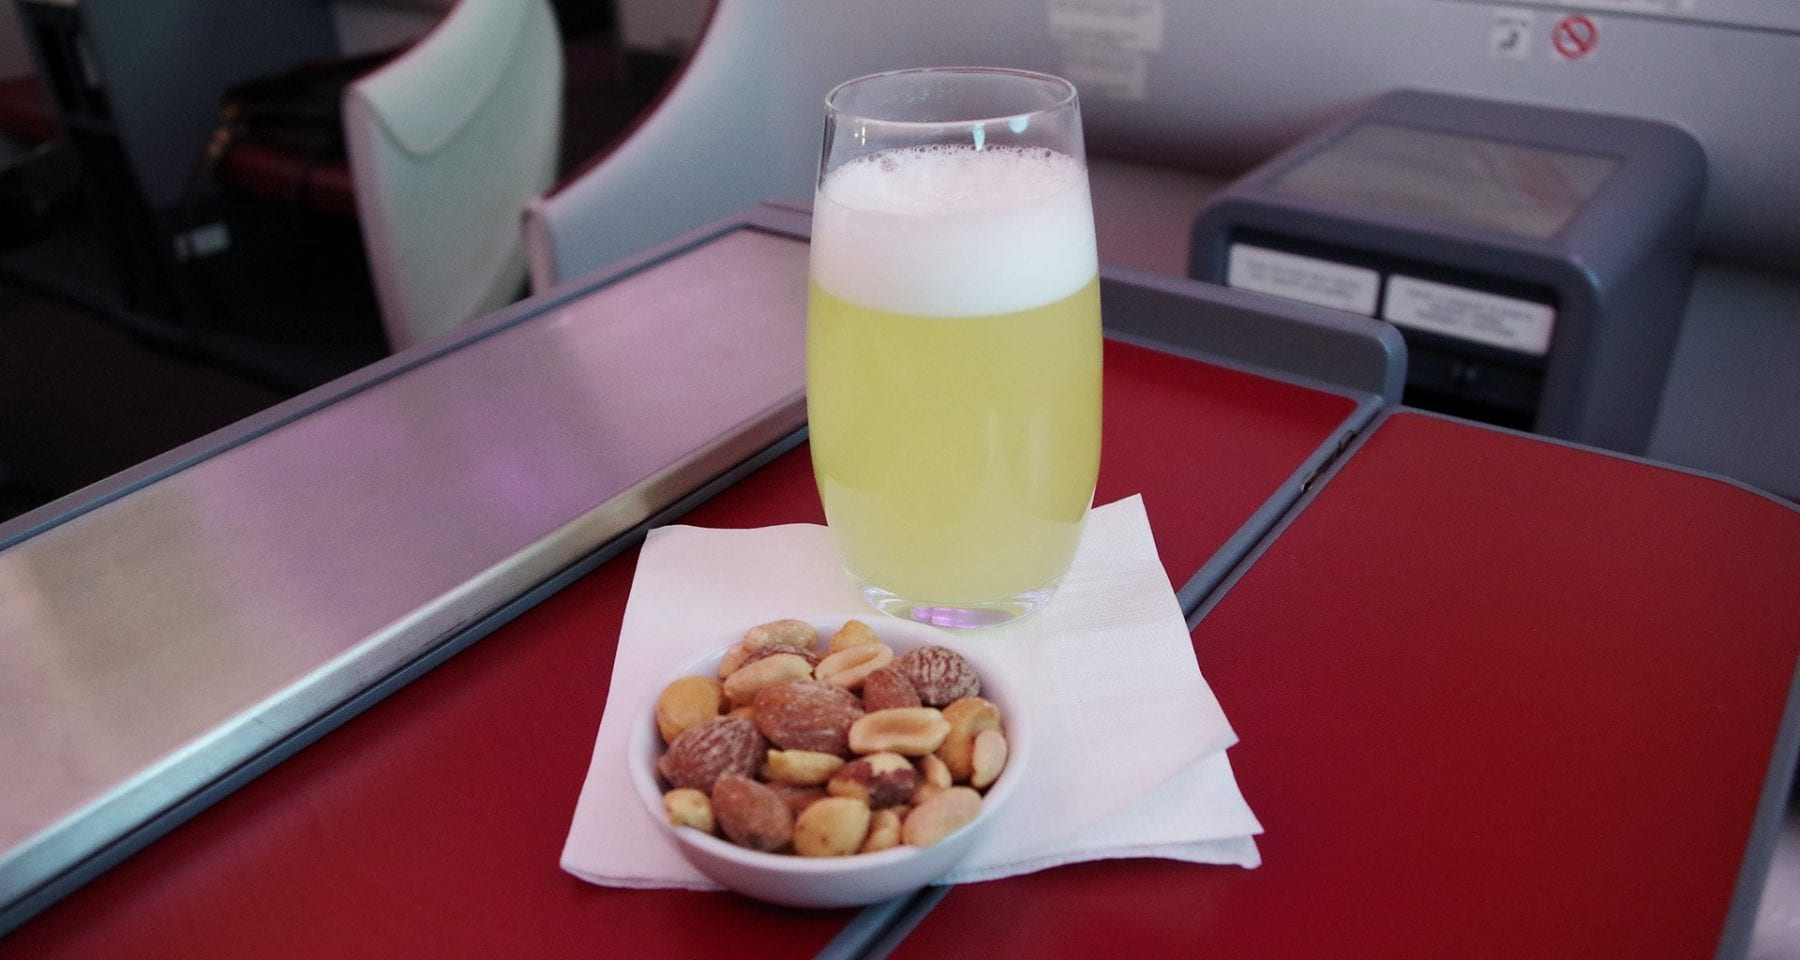 Lan Chile Pisco Sour and assortment of nuts